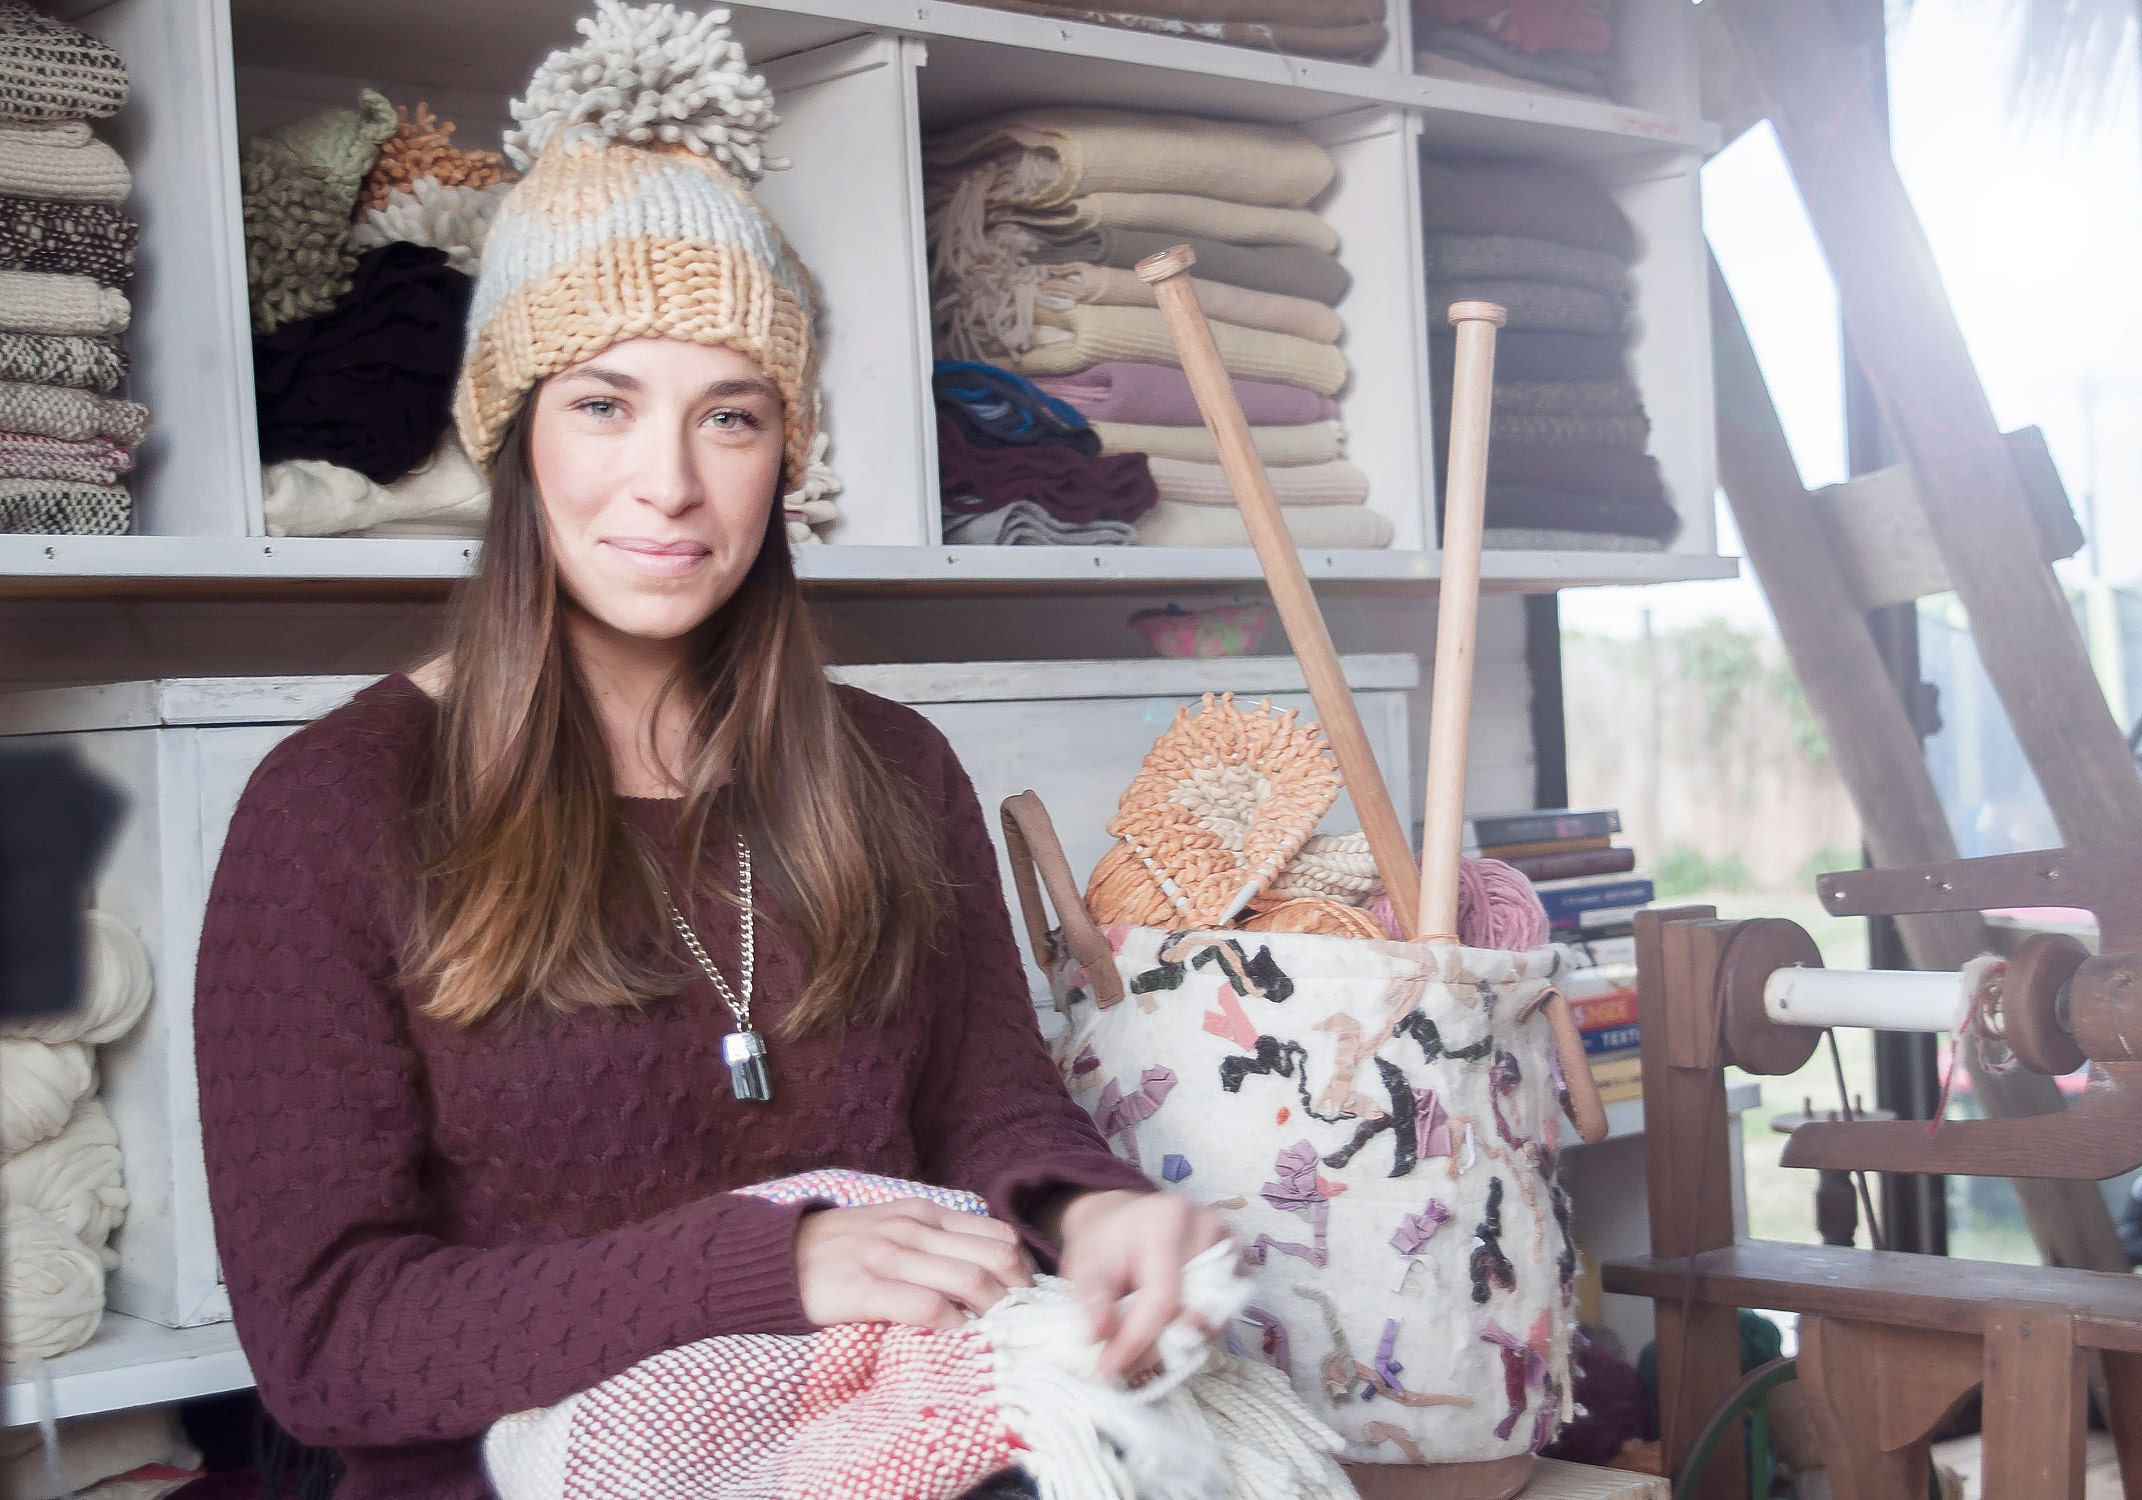 Claudia Rosillo, owner of Texturable and Texturable Decor